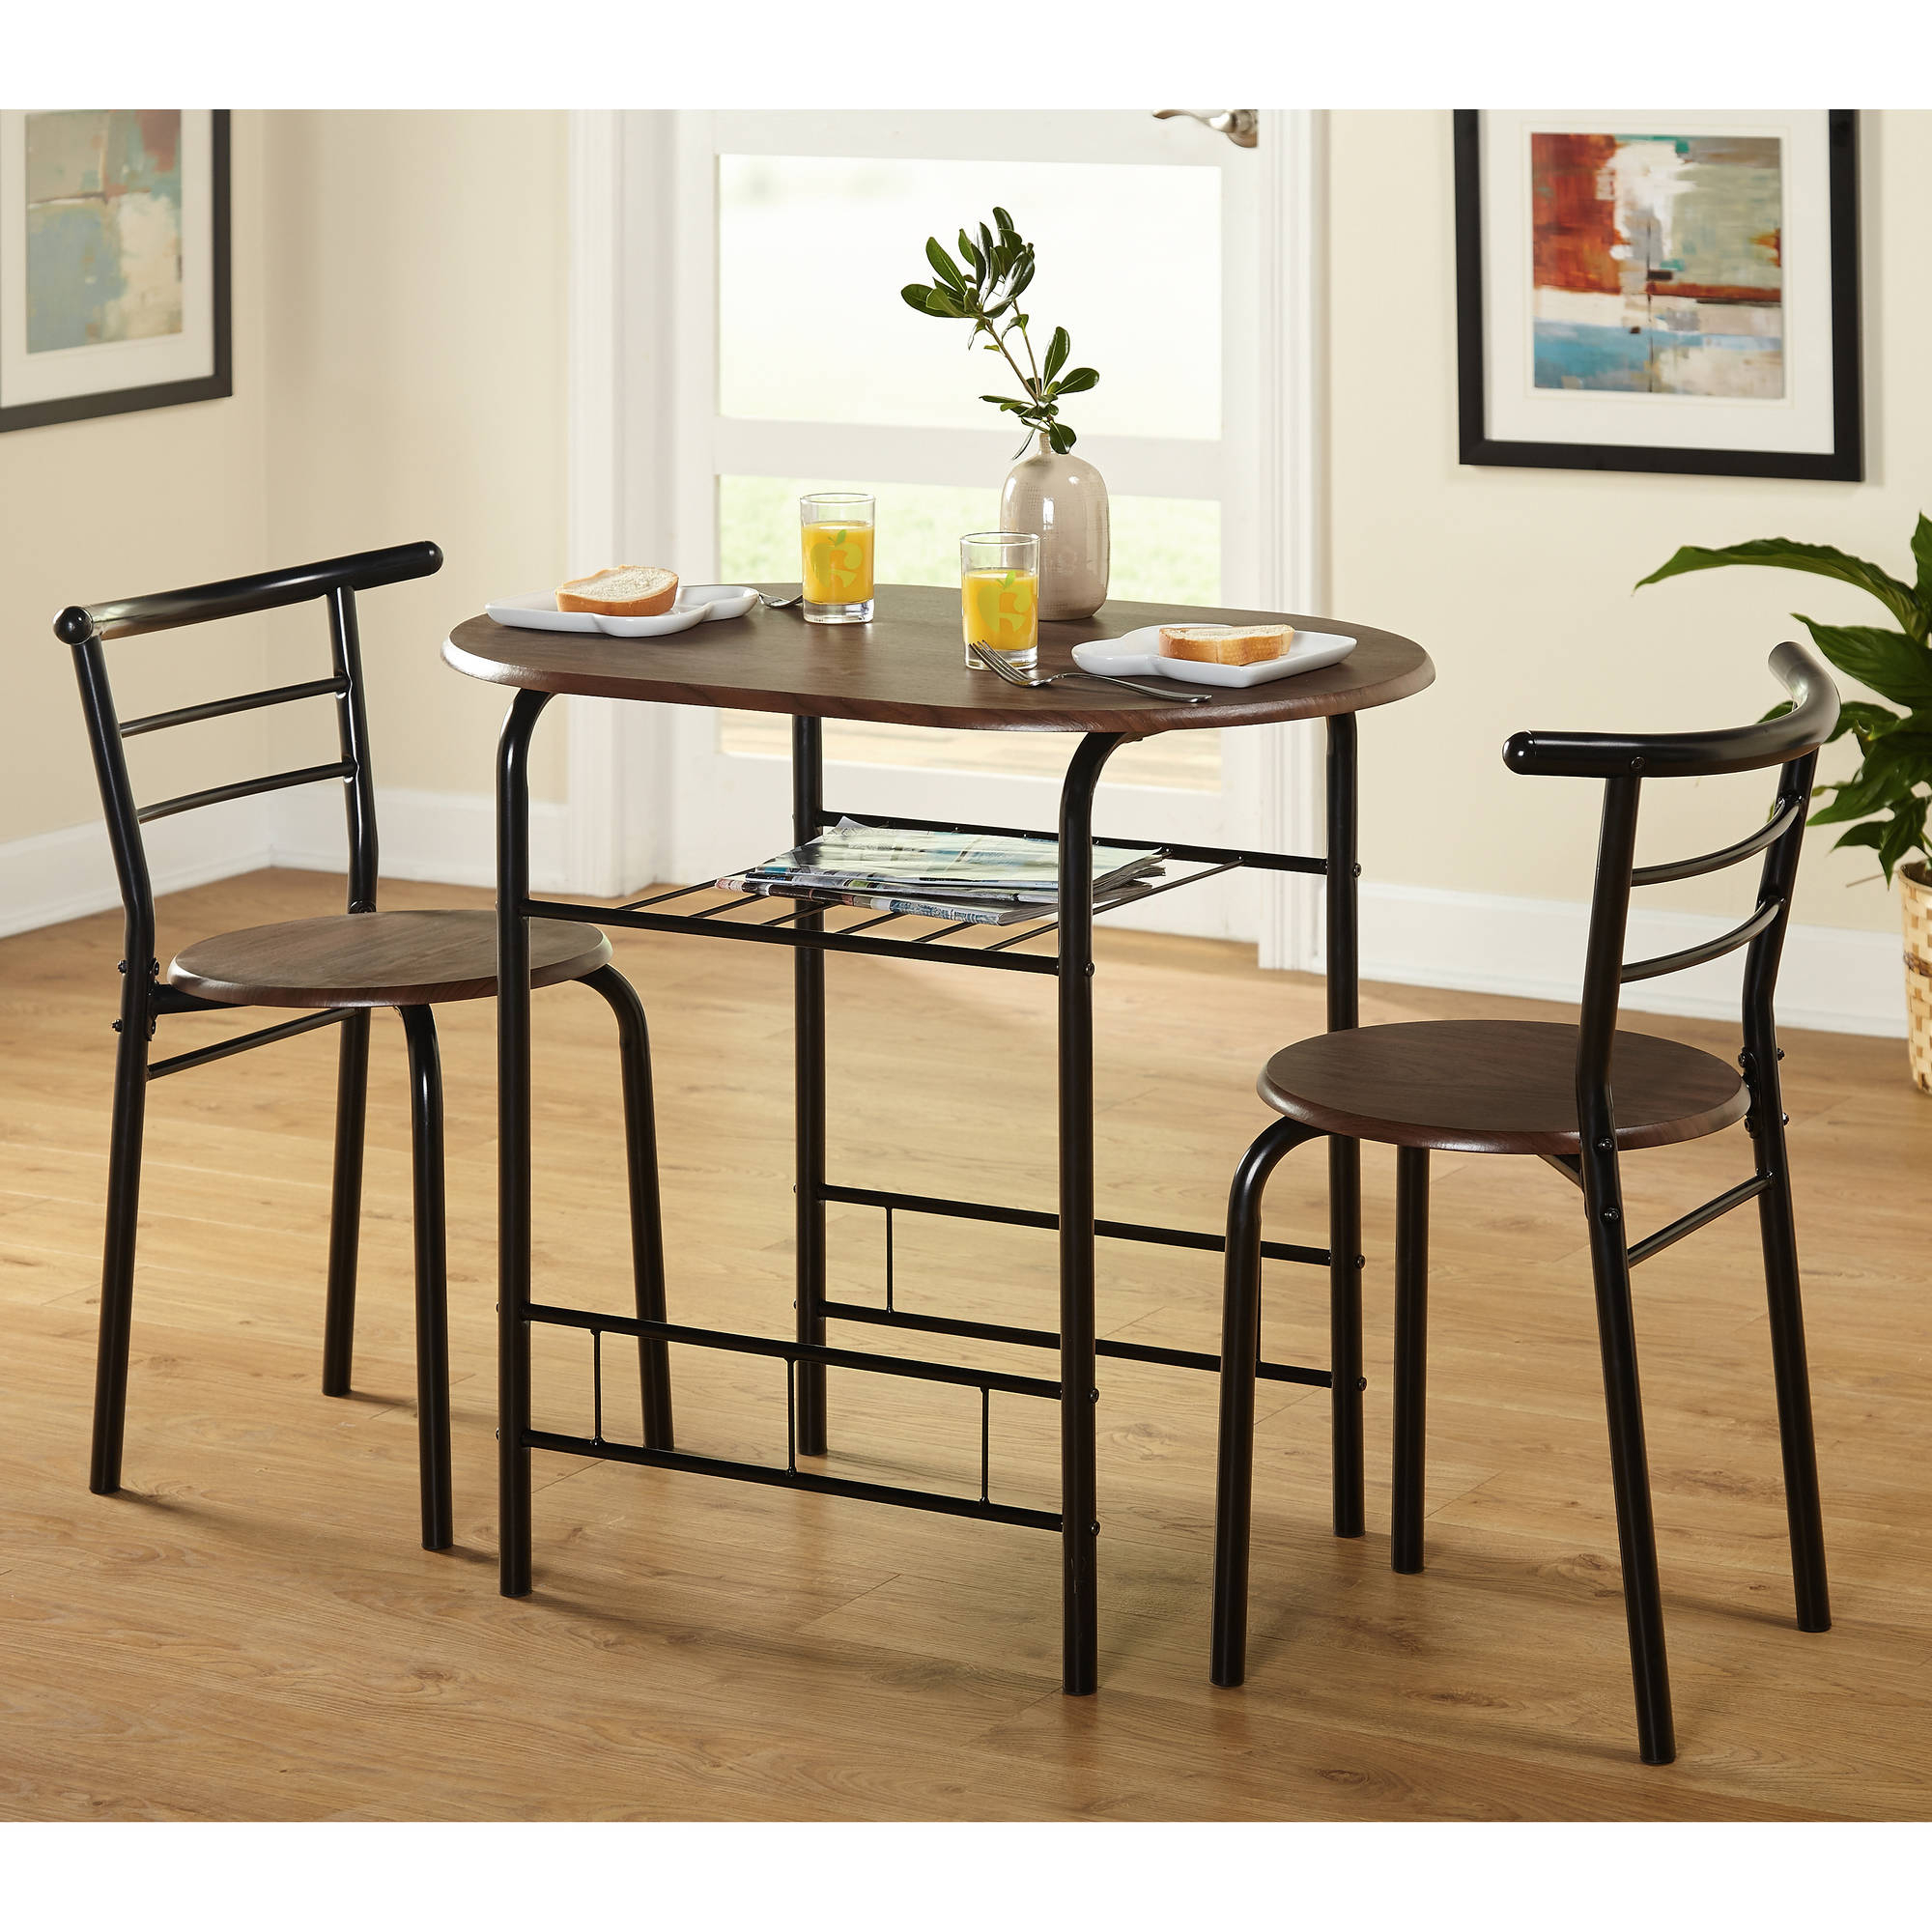 Most Up To Date Tms 3 Piece Bistro Dining Set Intended For 5 Piece Breakfast Nook Dining Sets (View 11 of 20)